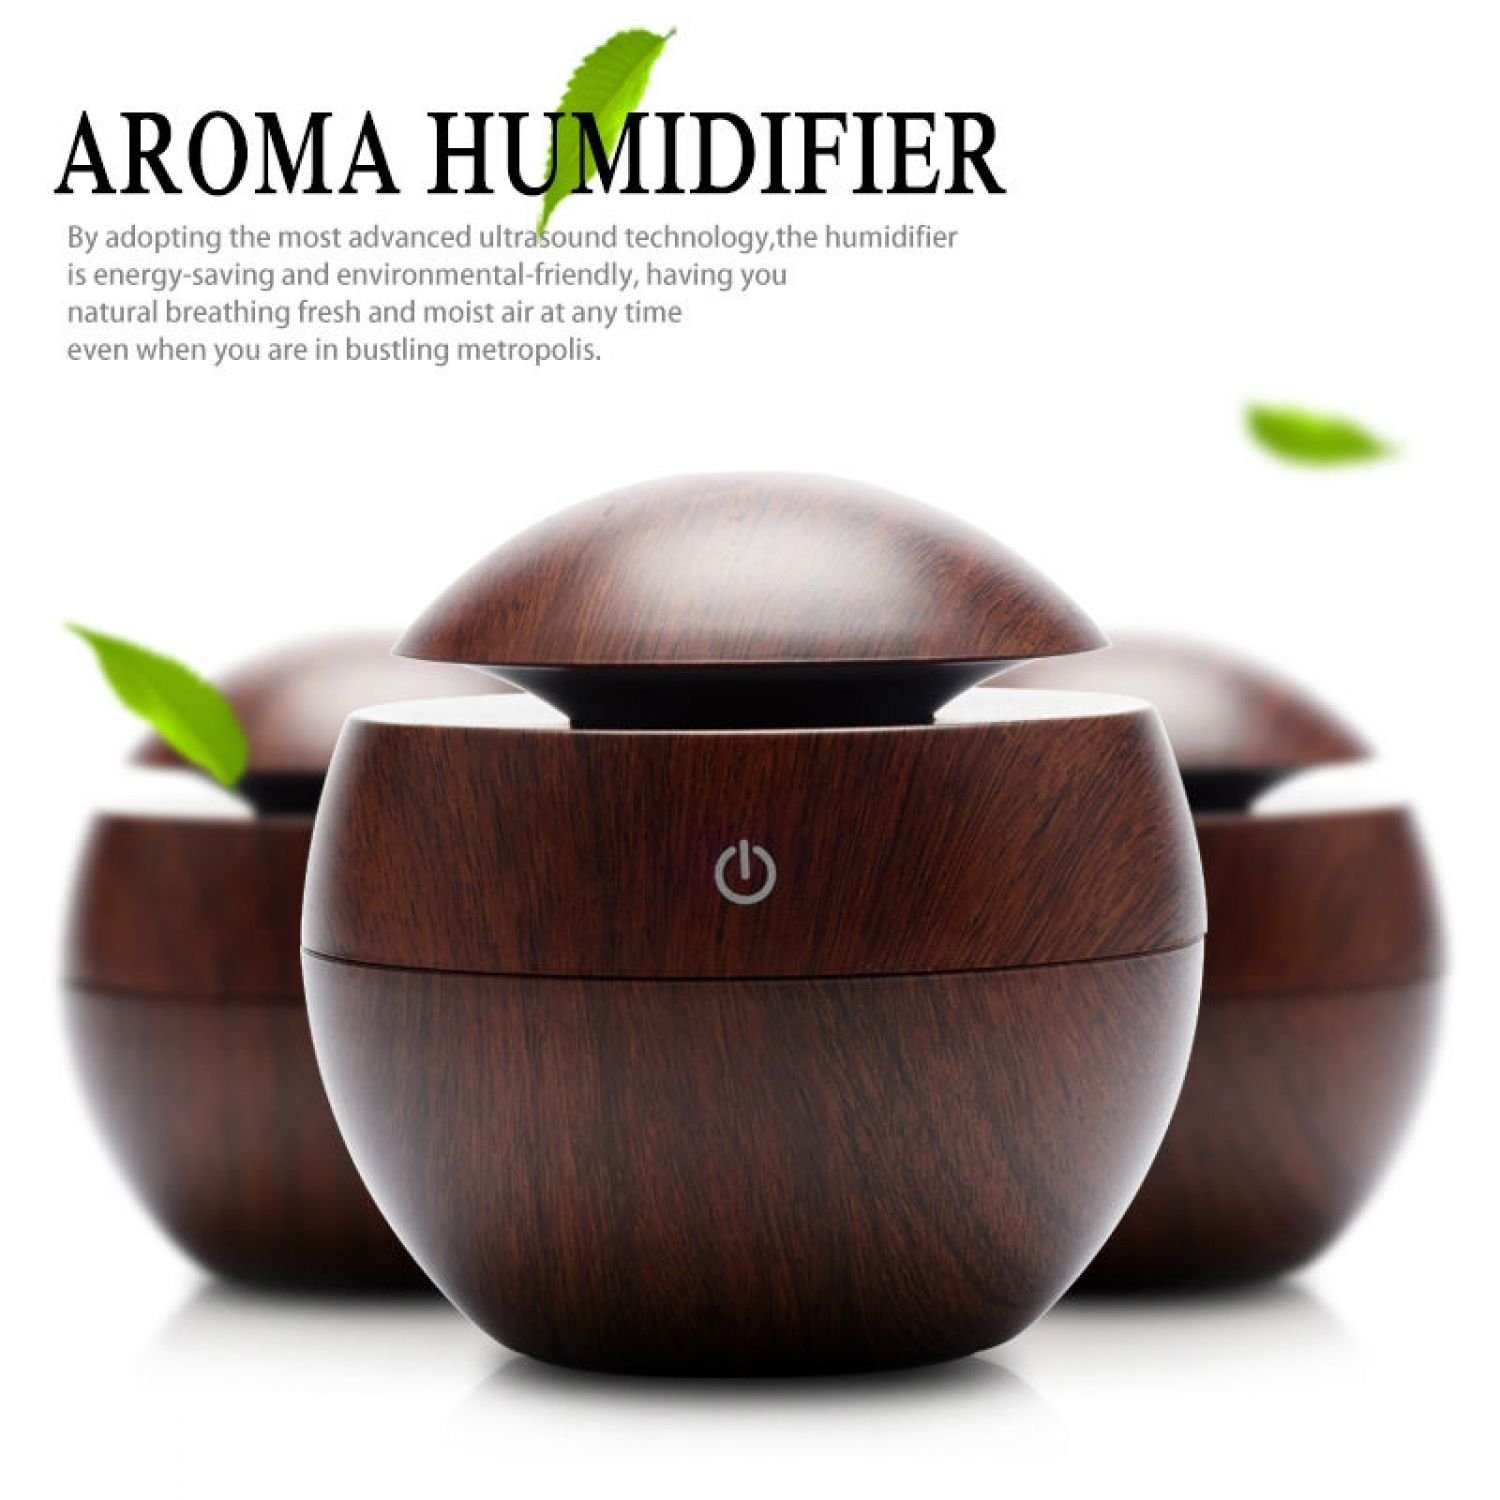 Mini Wooden Aromatherapy Humidifier USB Aroma Diffuser Portable Air Purifier ABS